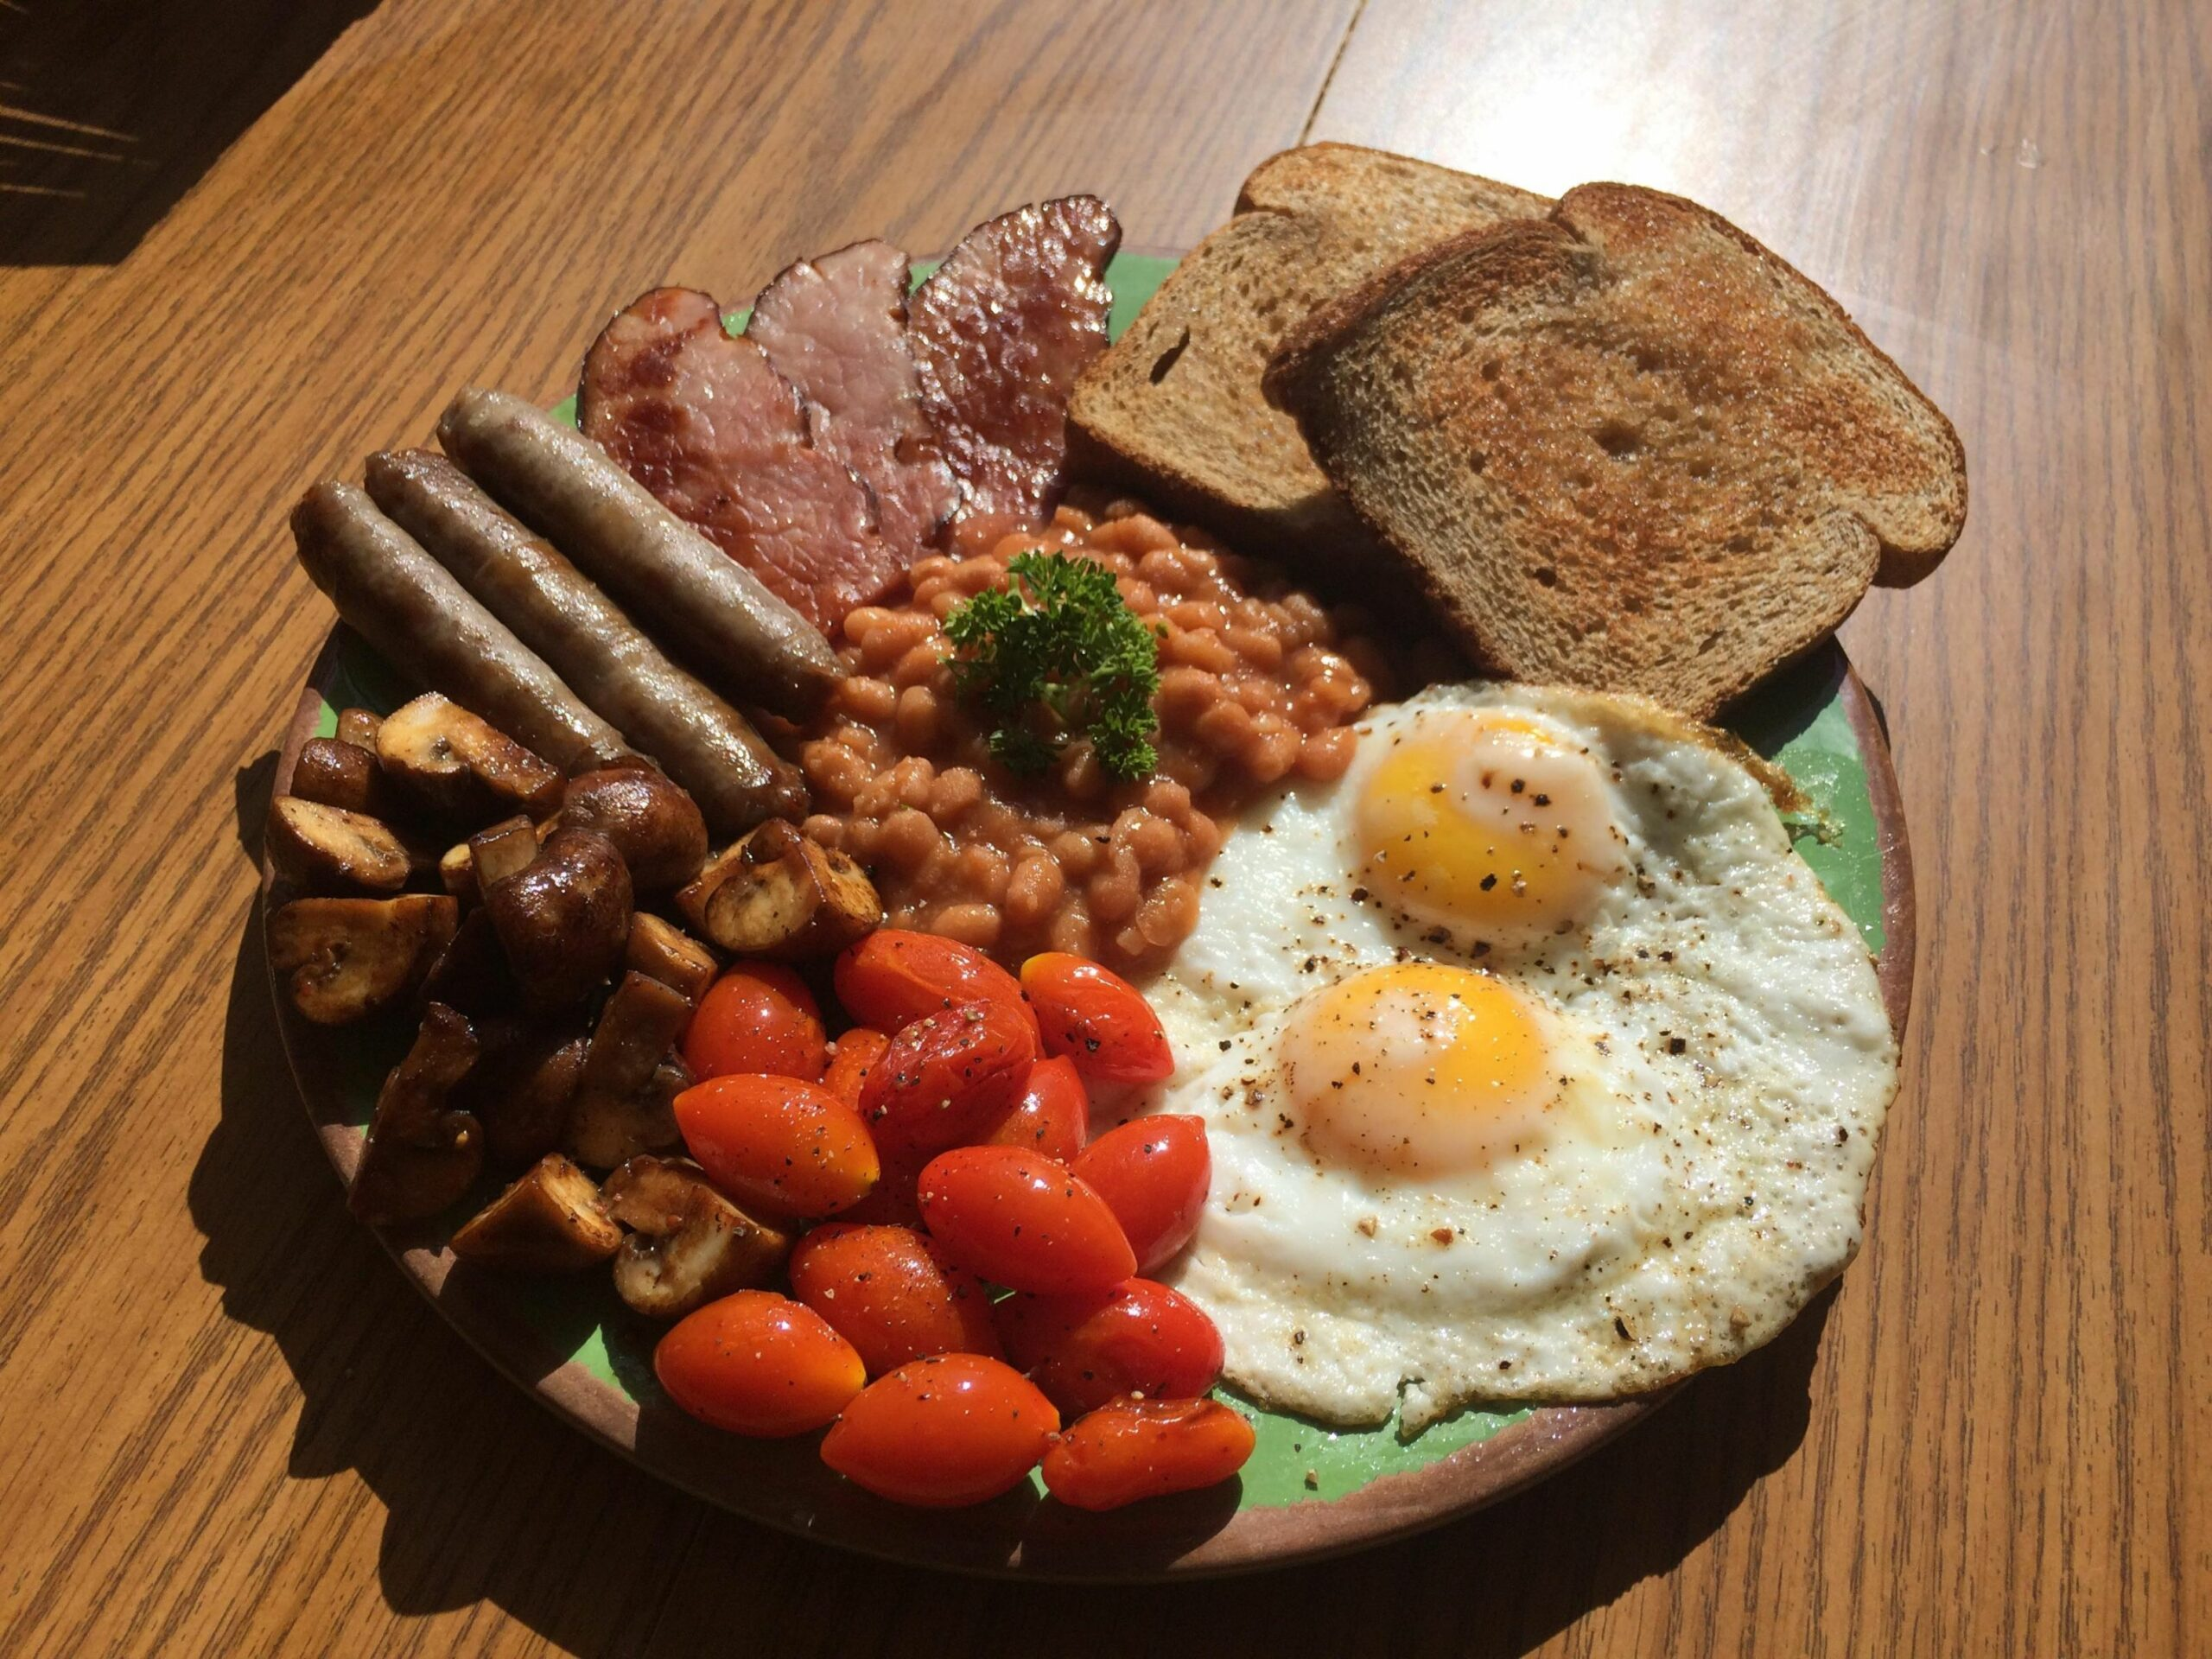 Homemade] The full English breakfast : food - Breakfast Recipes Reddit